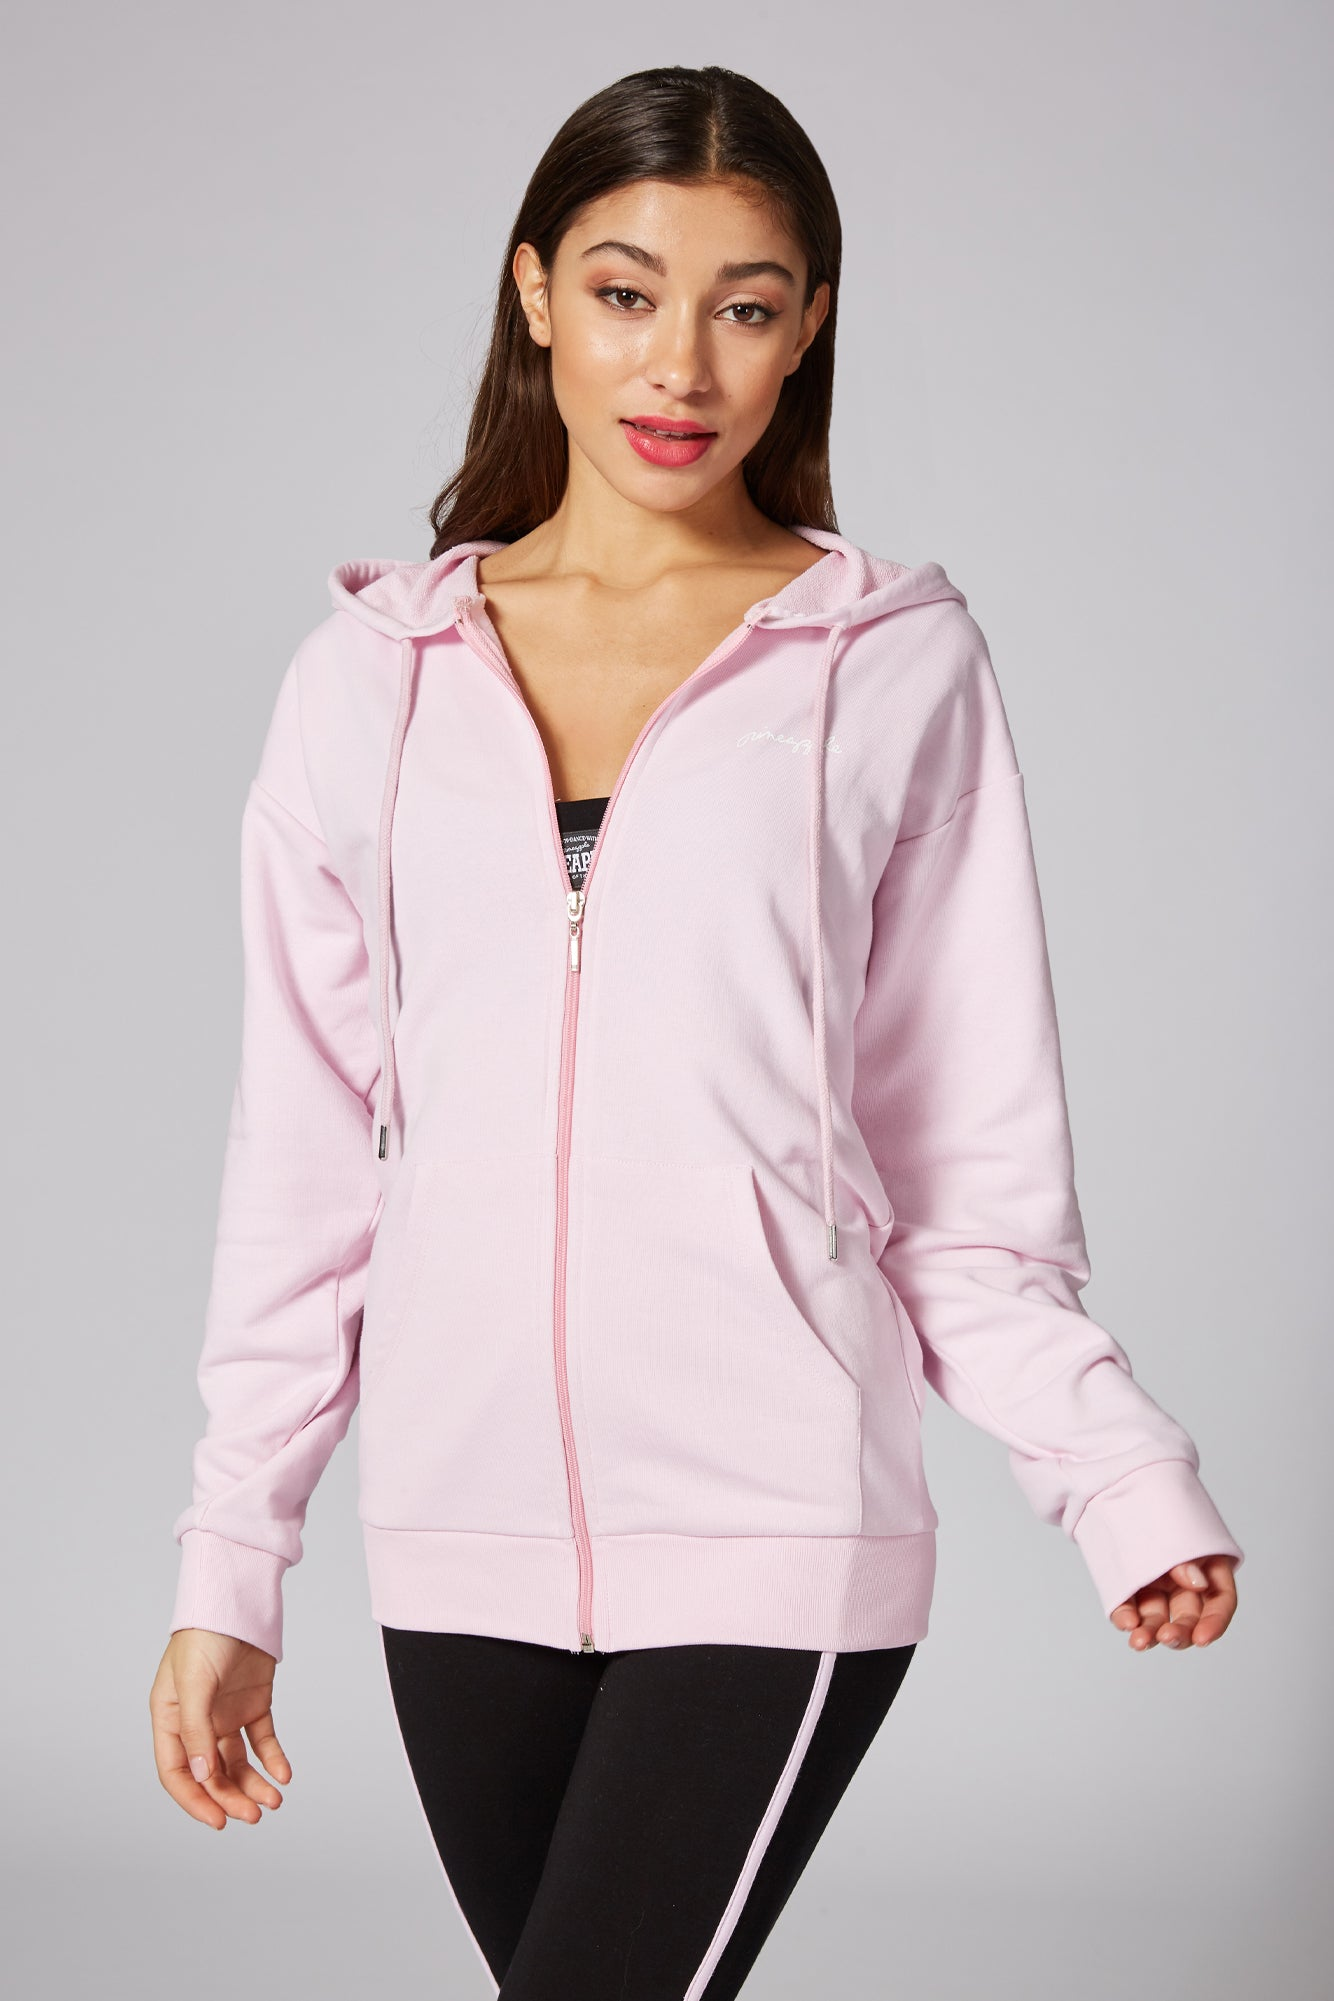 Pineapple Dancewear Women's Pink Fleece Zip Hoodie